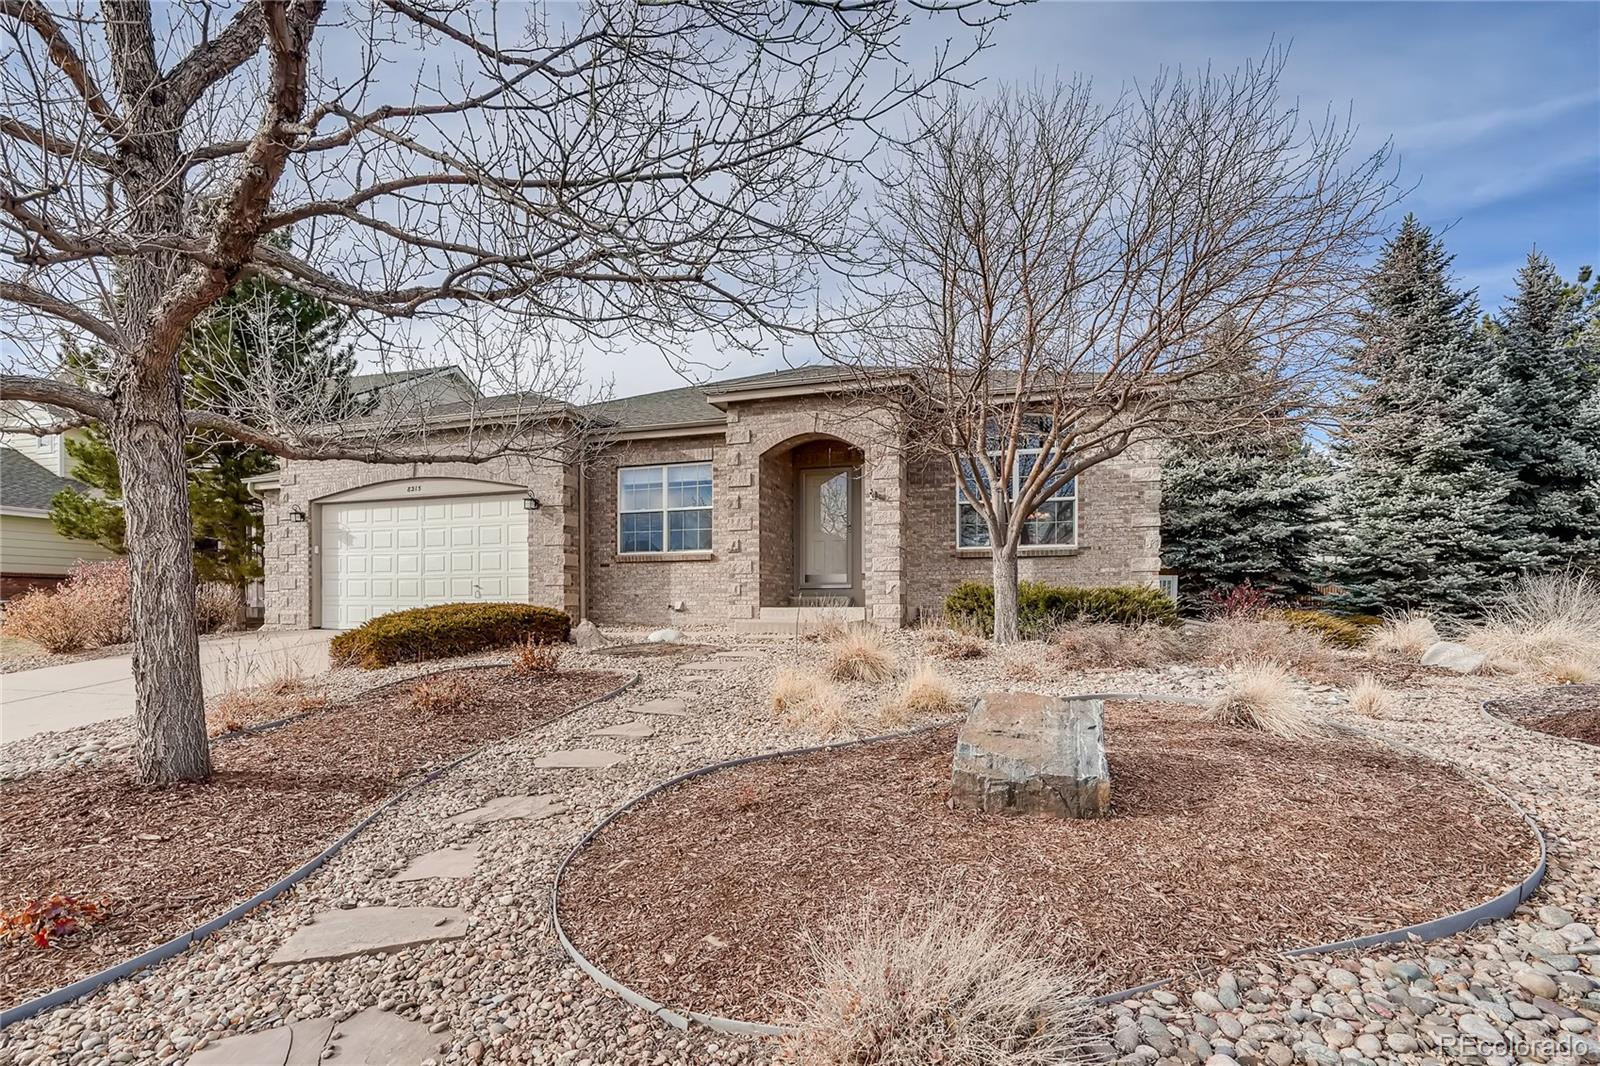 8215 Wetherill Circle, Castle Pines, CO 80108 - #: 5660007